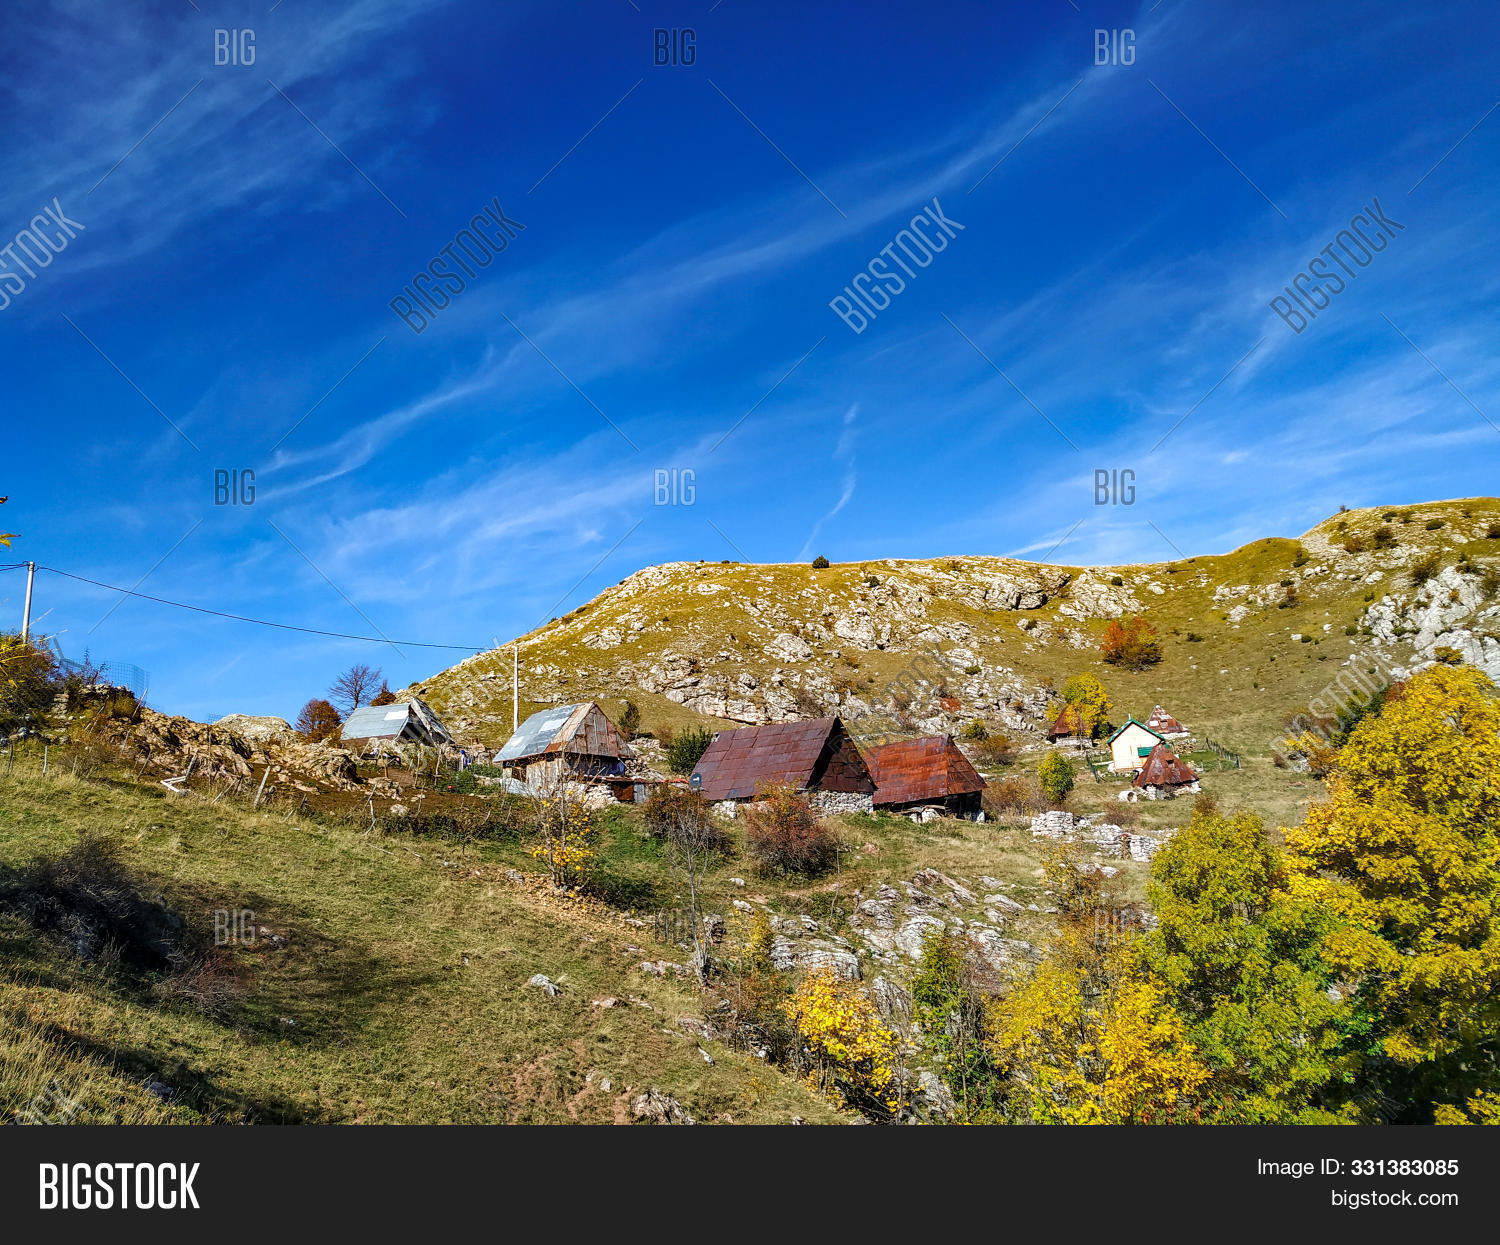 adventure,agriculture,architecture,attraction,autumn,background,beautiful,blue,building,built,cabin,calm,cottage,country,countryside,destination,domestic,environment,fall,farm,farmland,grass,hiking,hill,homes,house,huts,isolated,journey,landscape,meadow,mountain,nature,old,peaceful,rest,rooftops,rural,scenery,sky,traditional,village,weekend